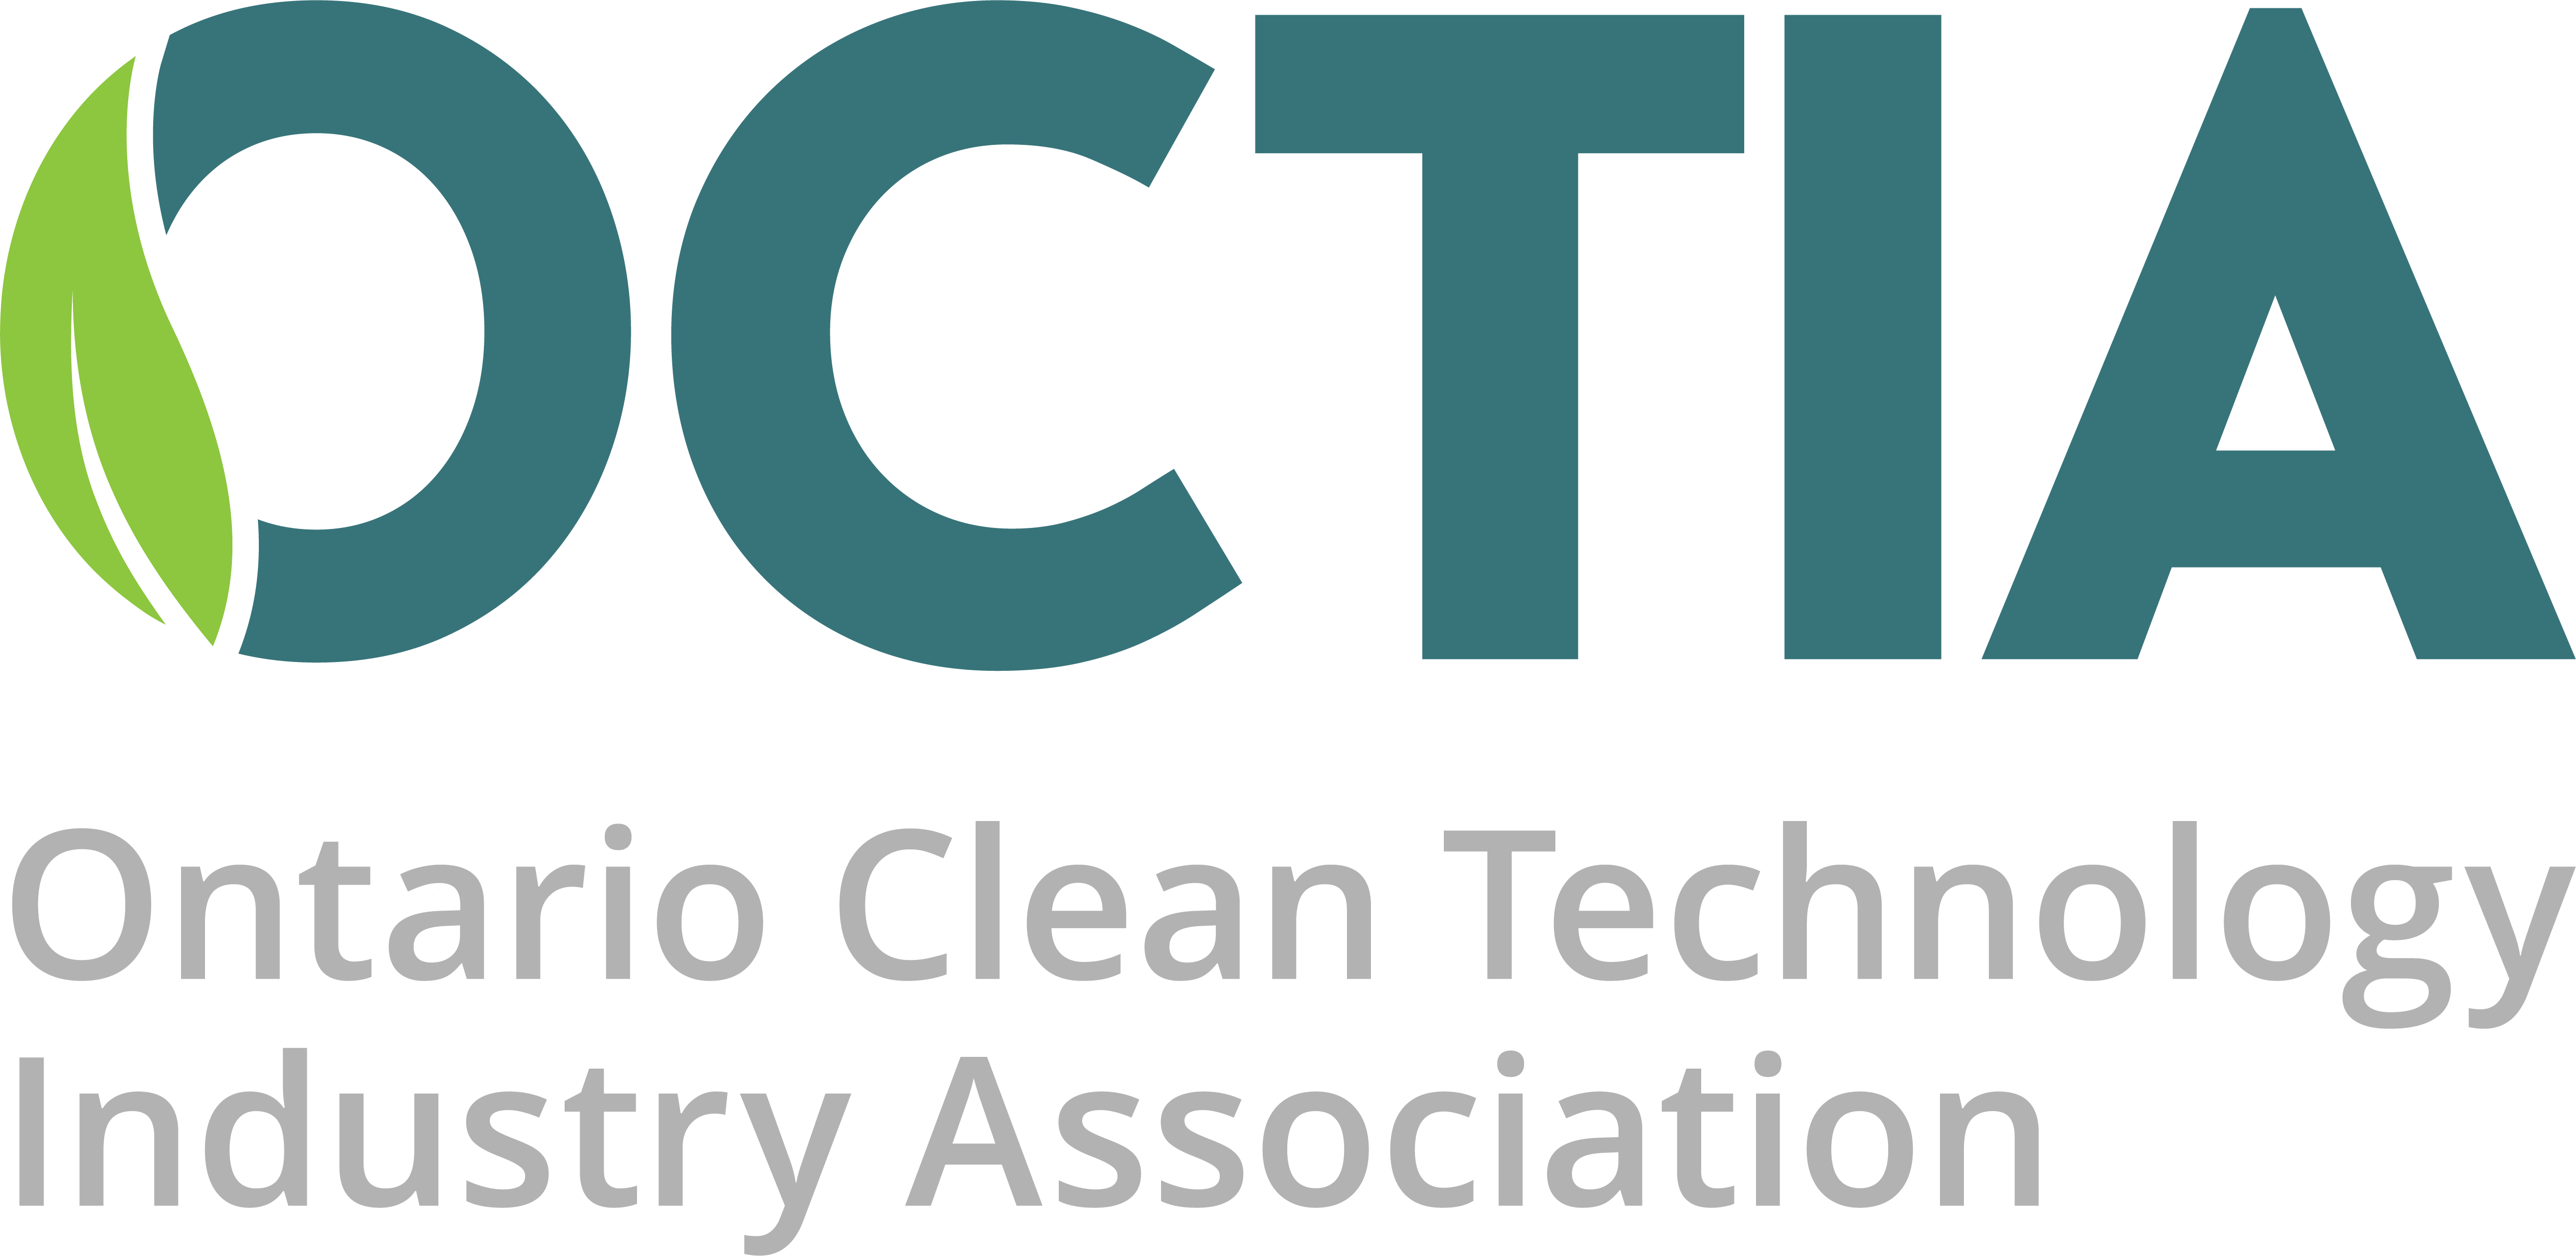 Ontario Clean Technology Industry Association